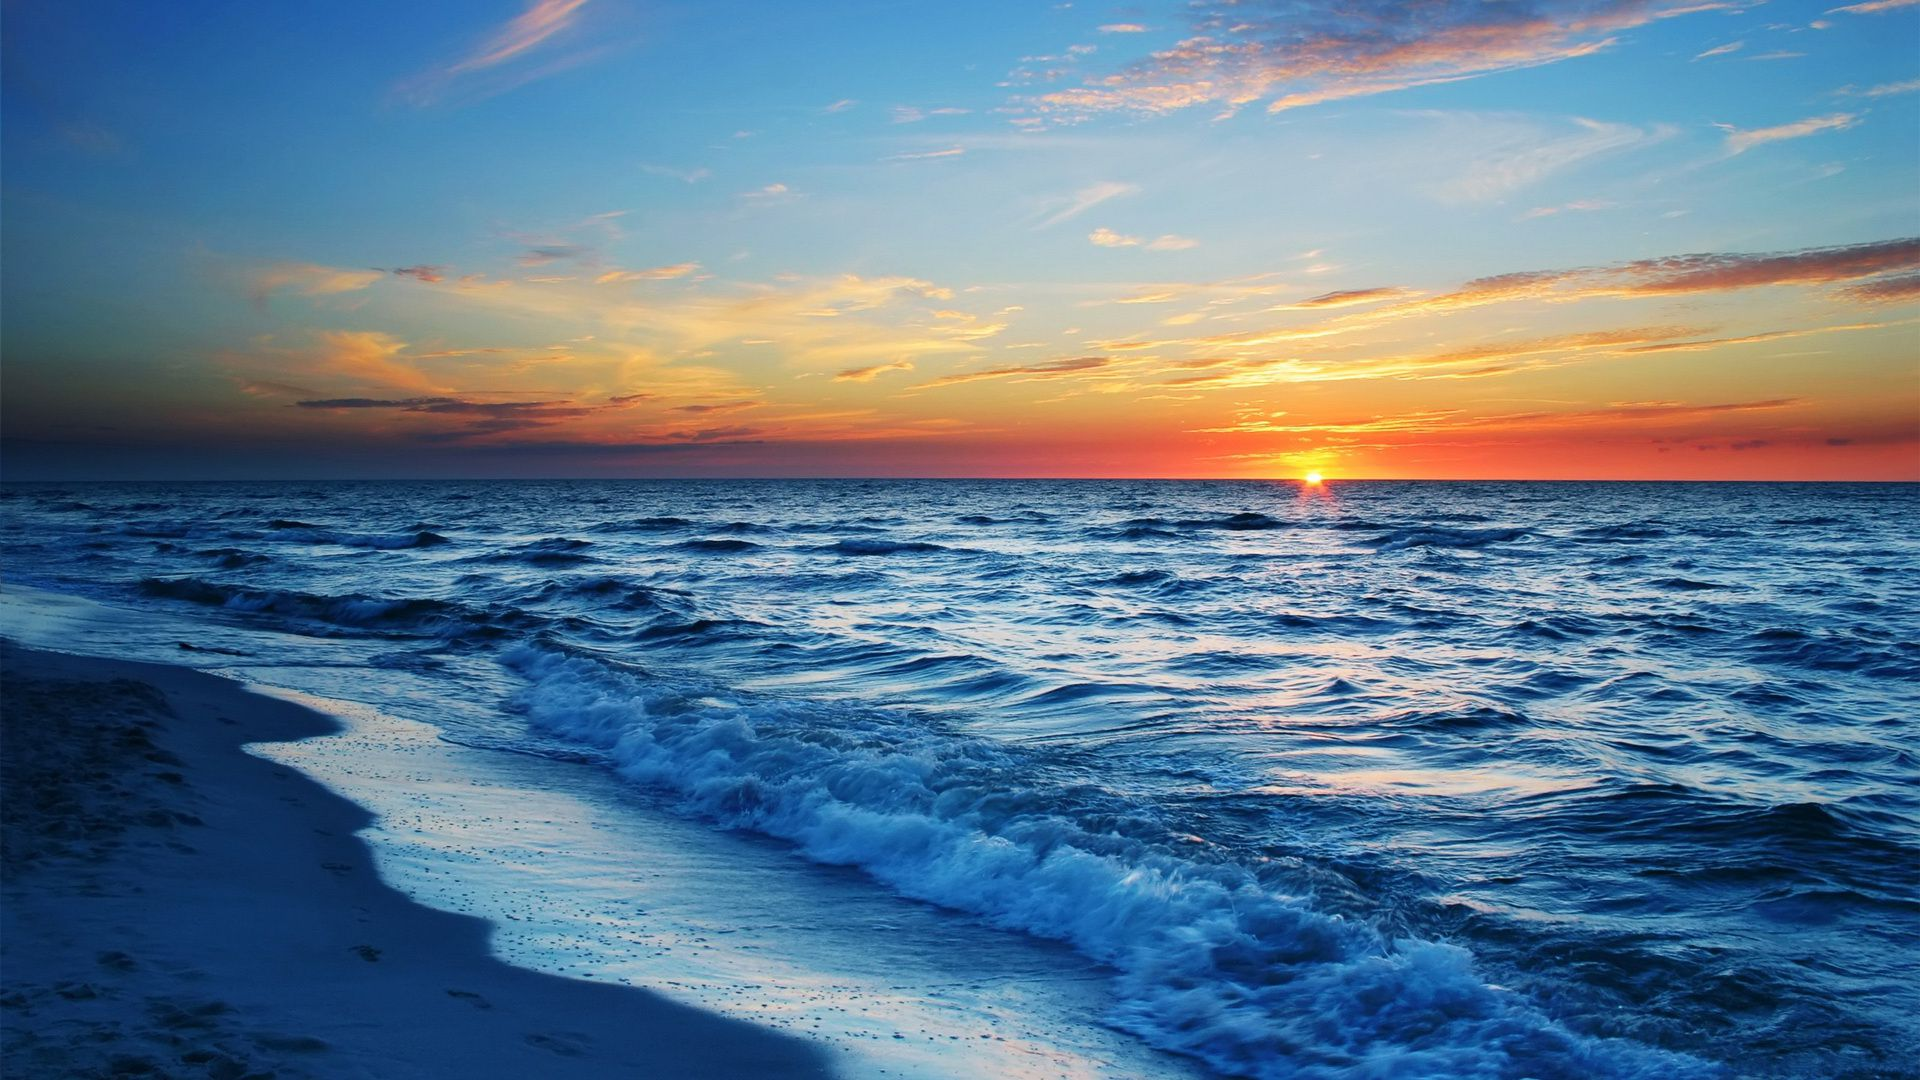 ... live ocean wallpaper for android which is under the ocean wallpapers